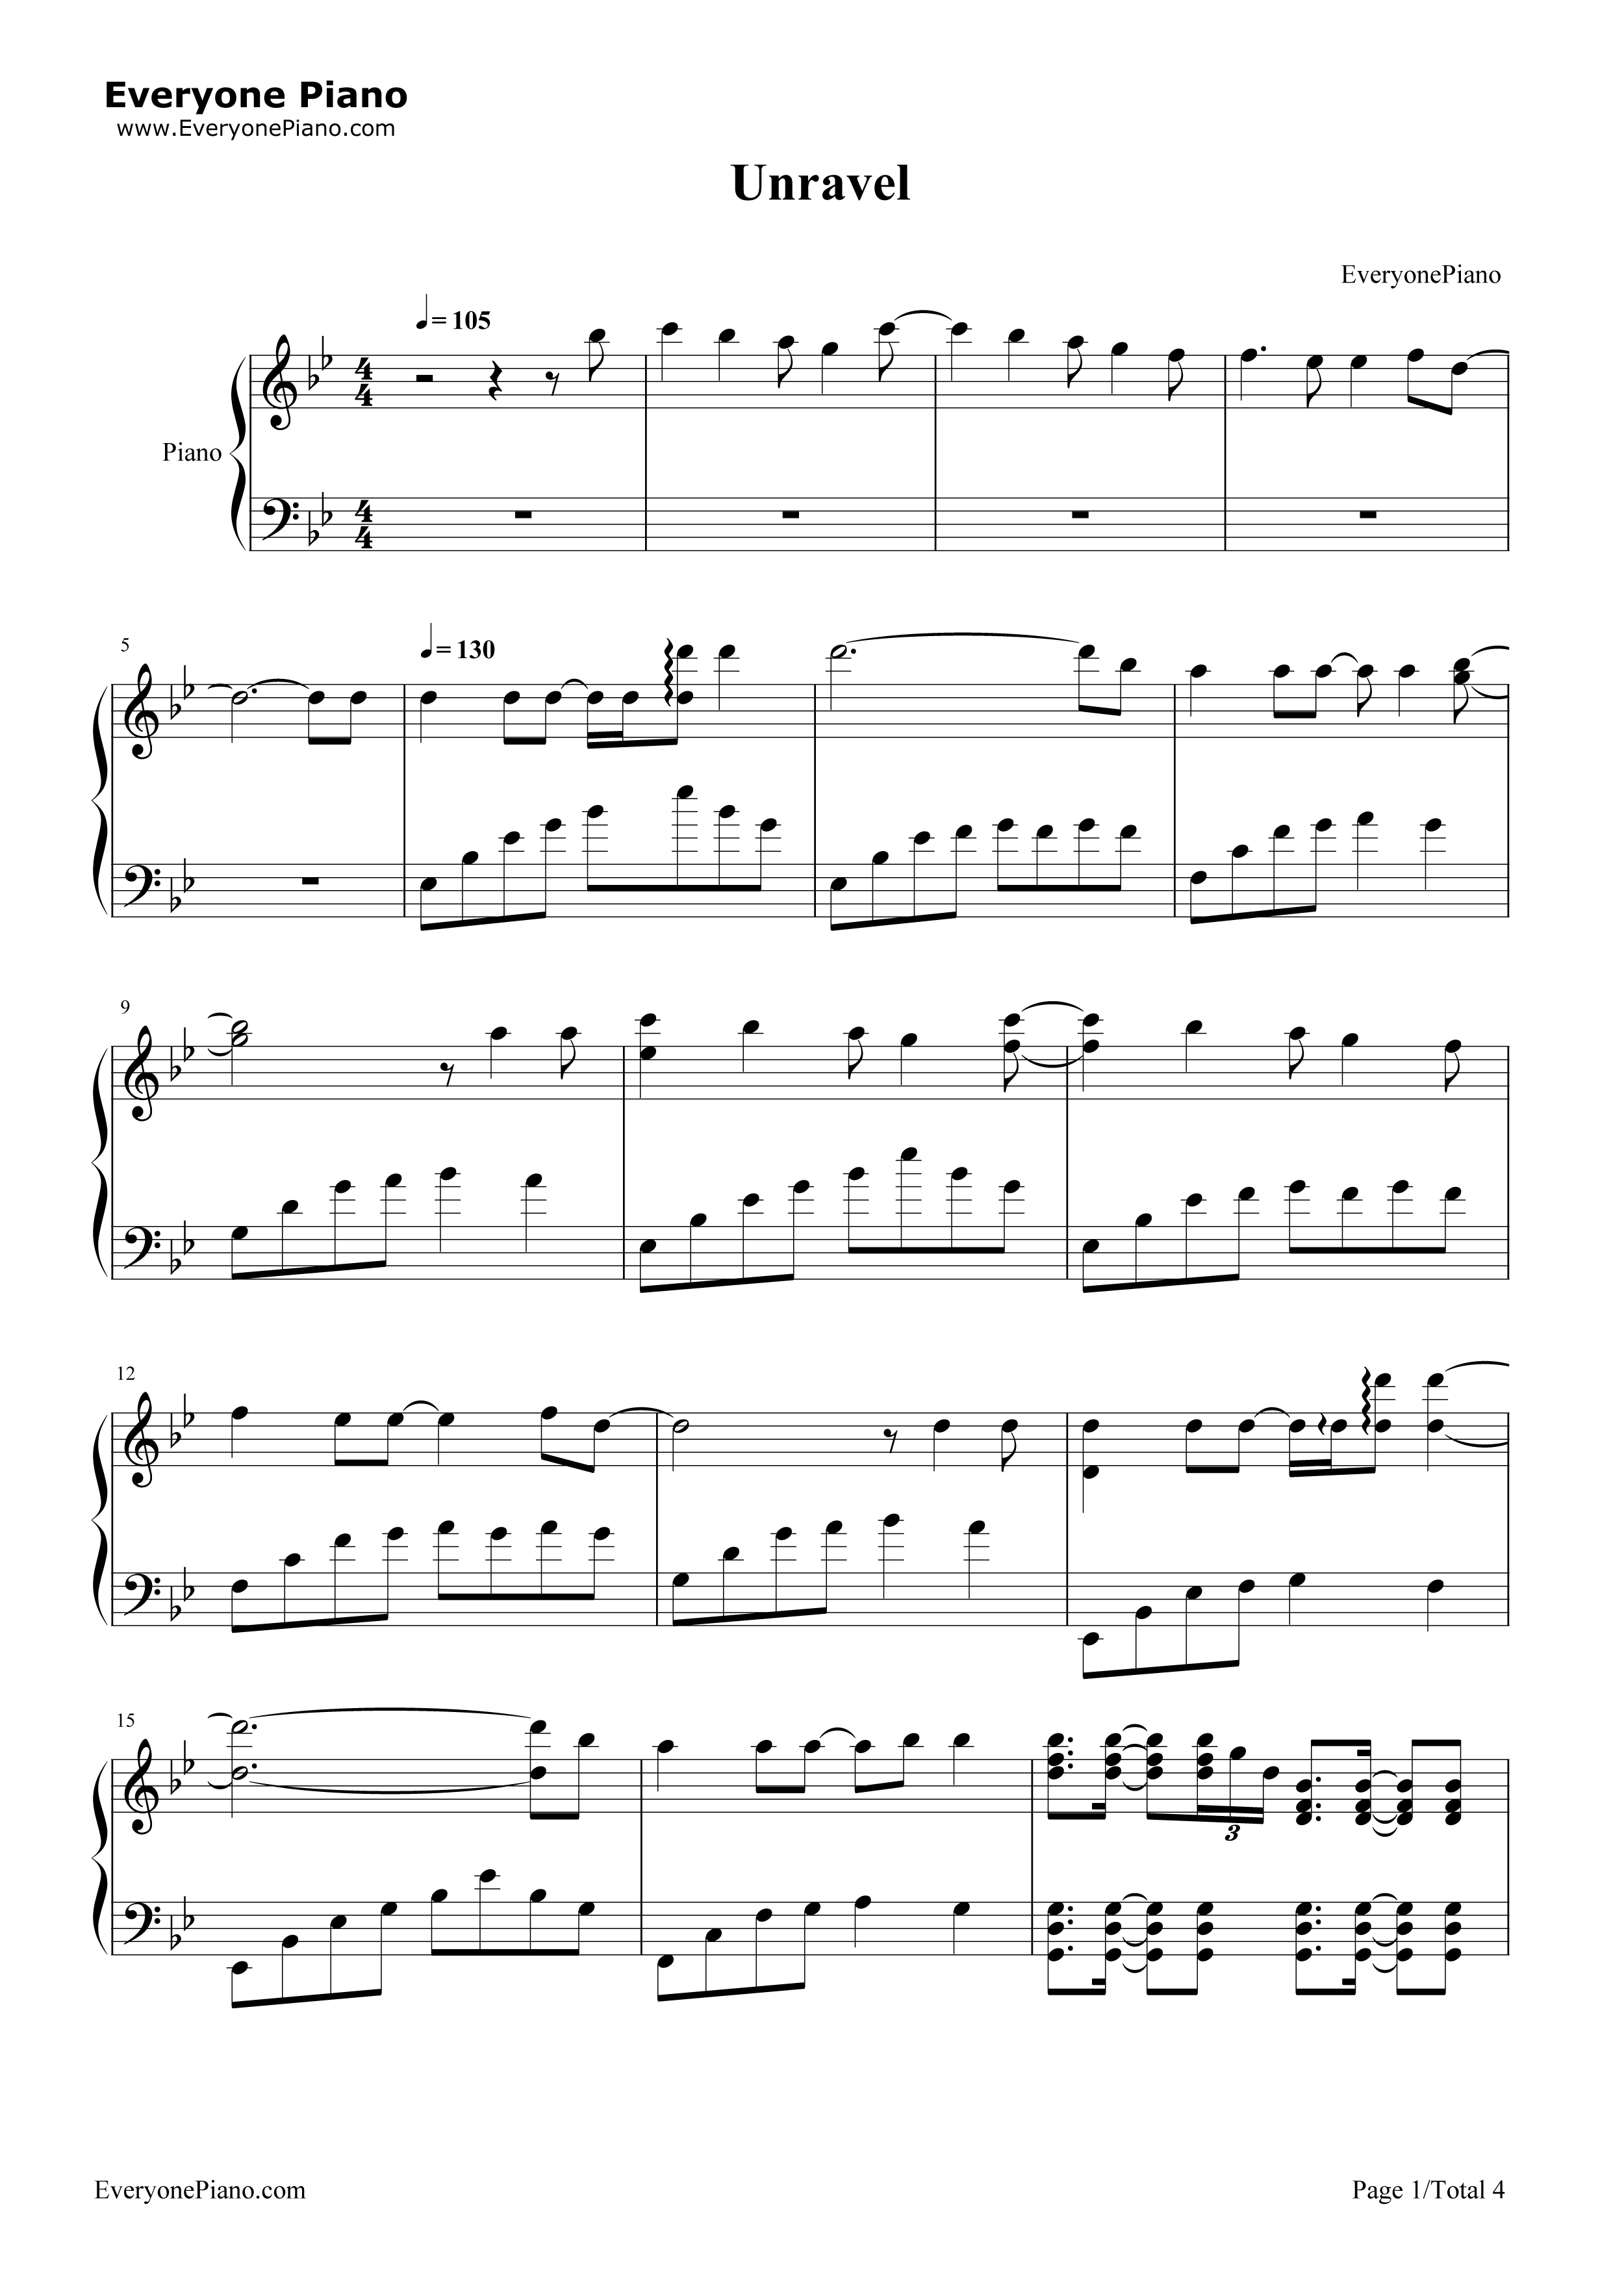 Unravel-Tokyo Ghoul OP Stave Preview 1-Free Piano Sheet Music u0026 Piano Chords